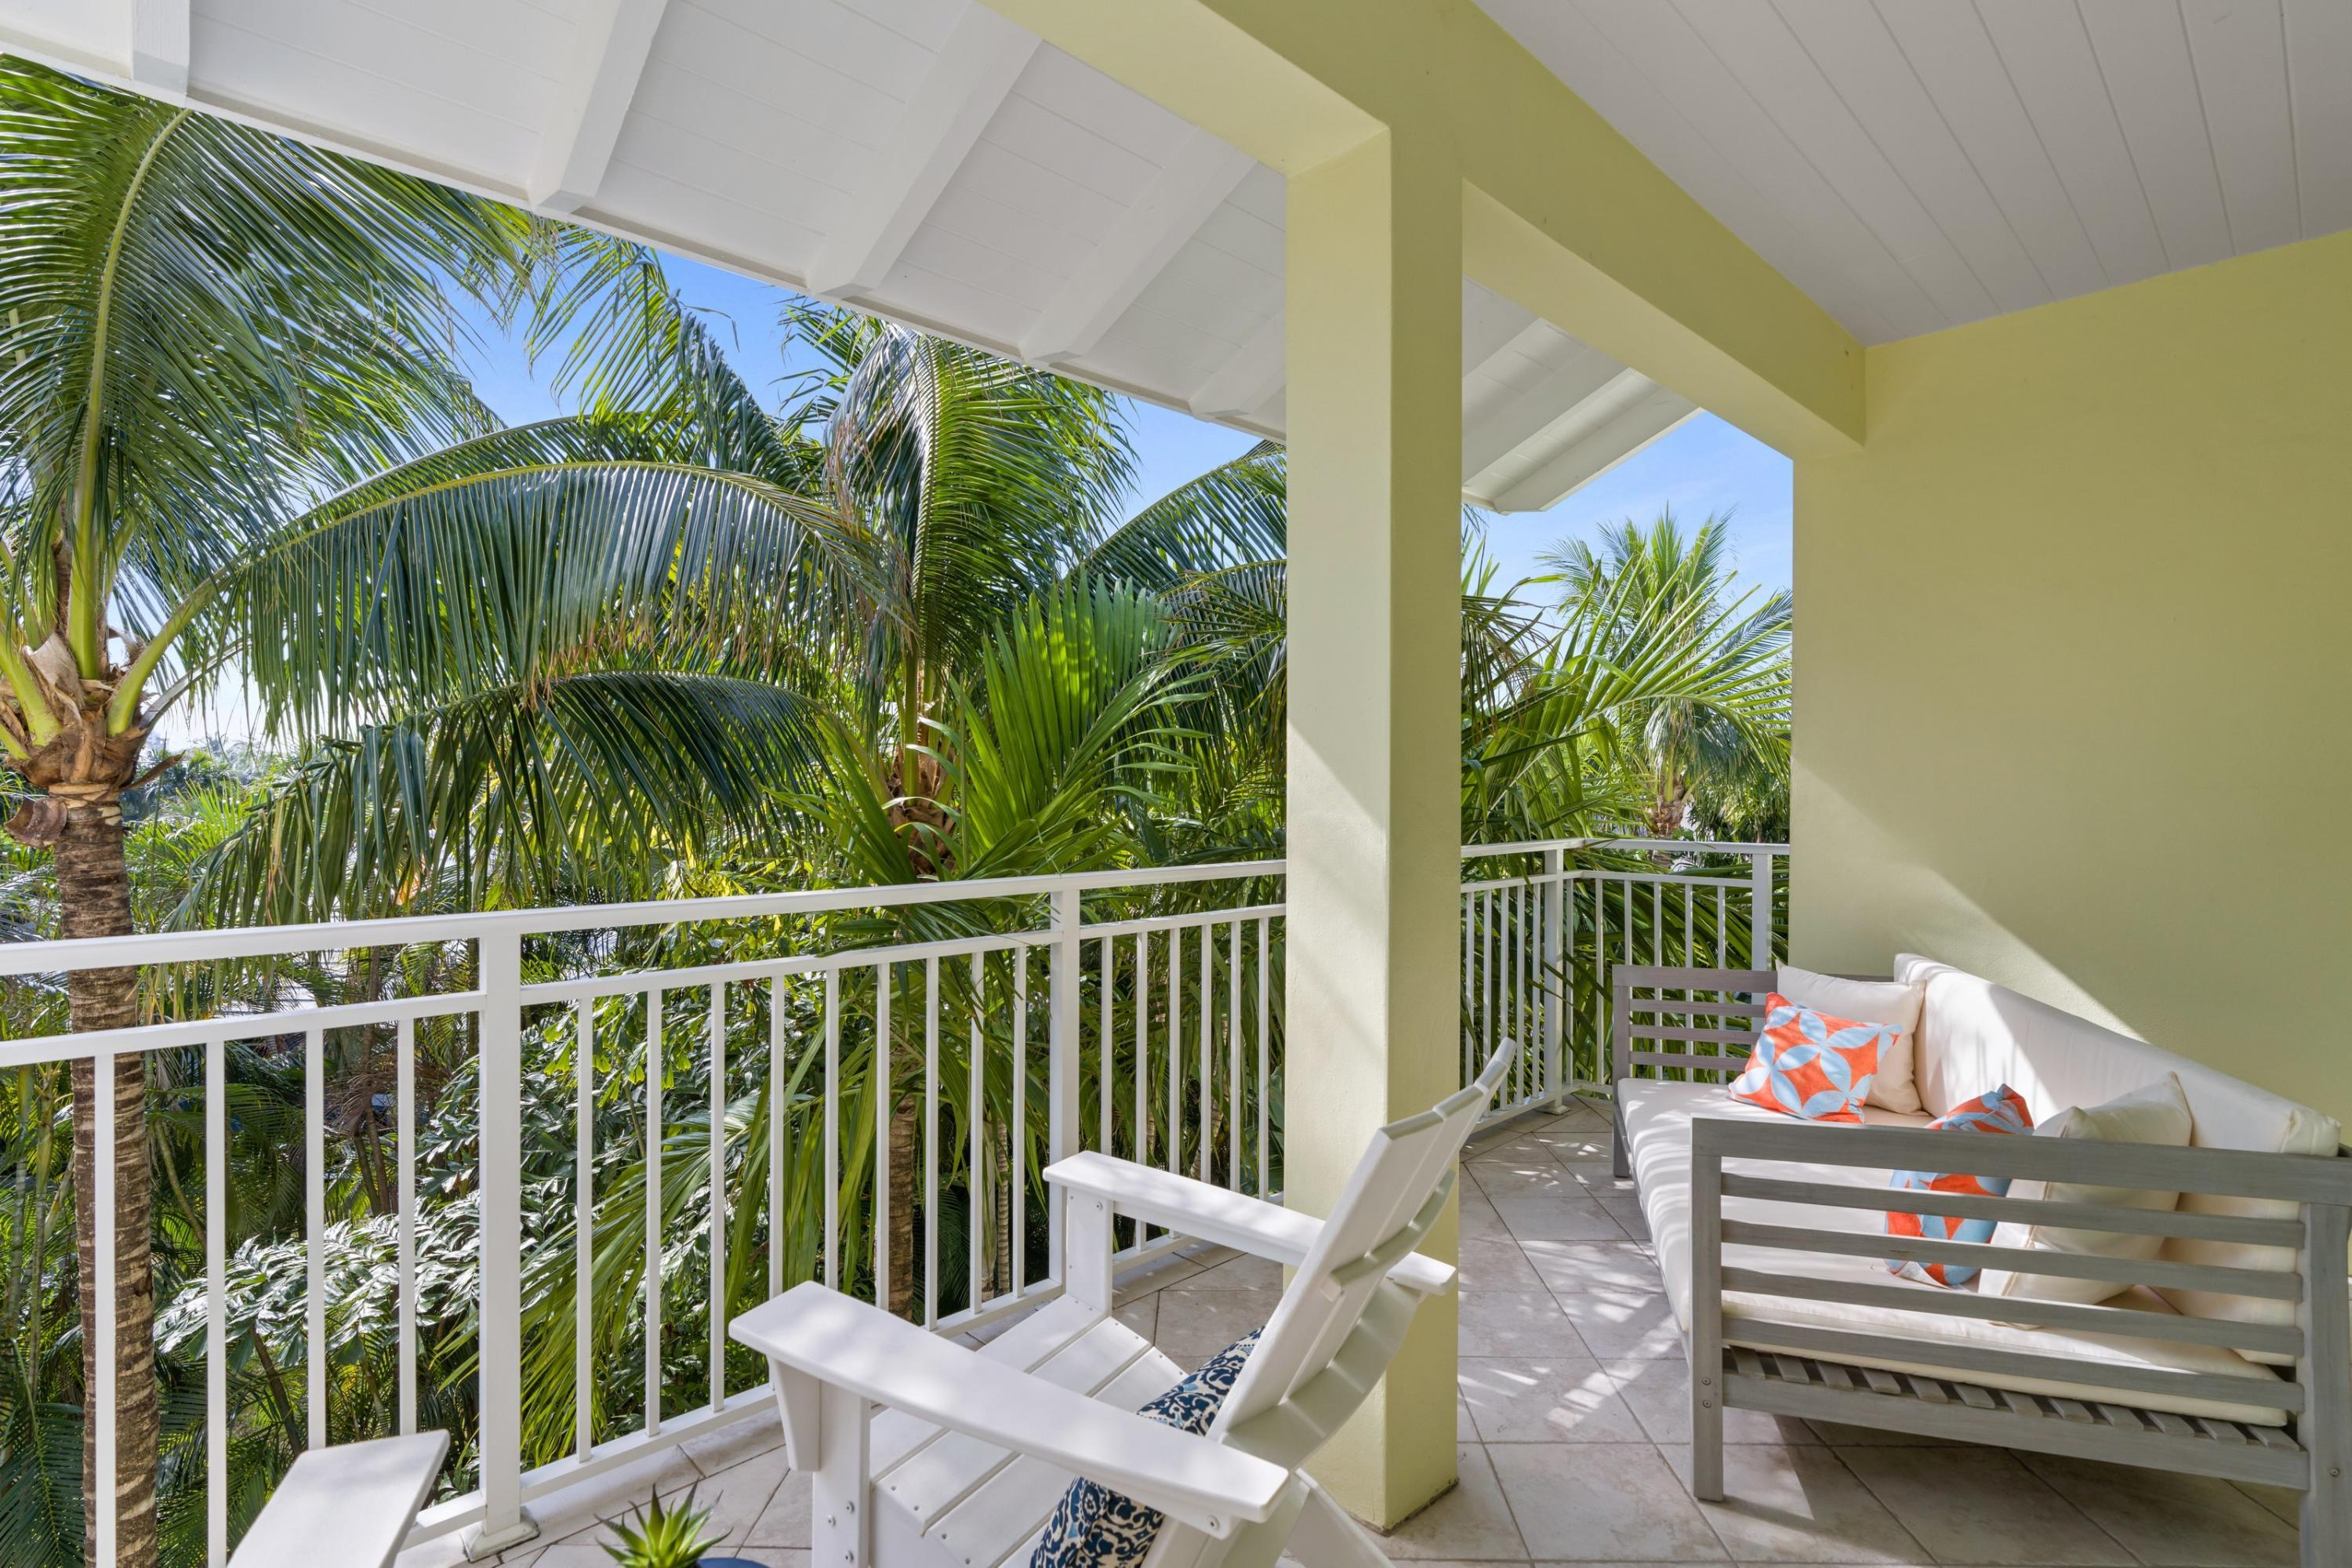 Home for sale in Shorewalker Delray Beach Florida